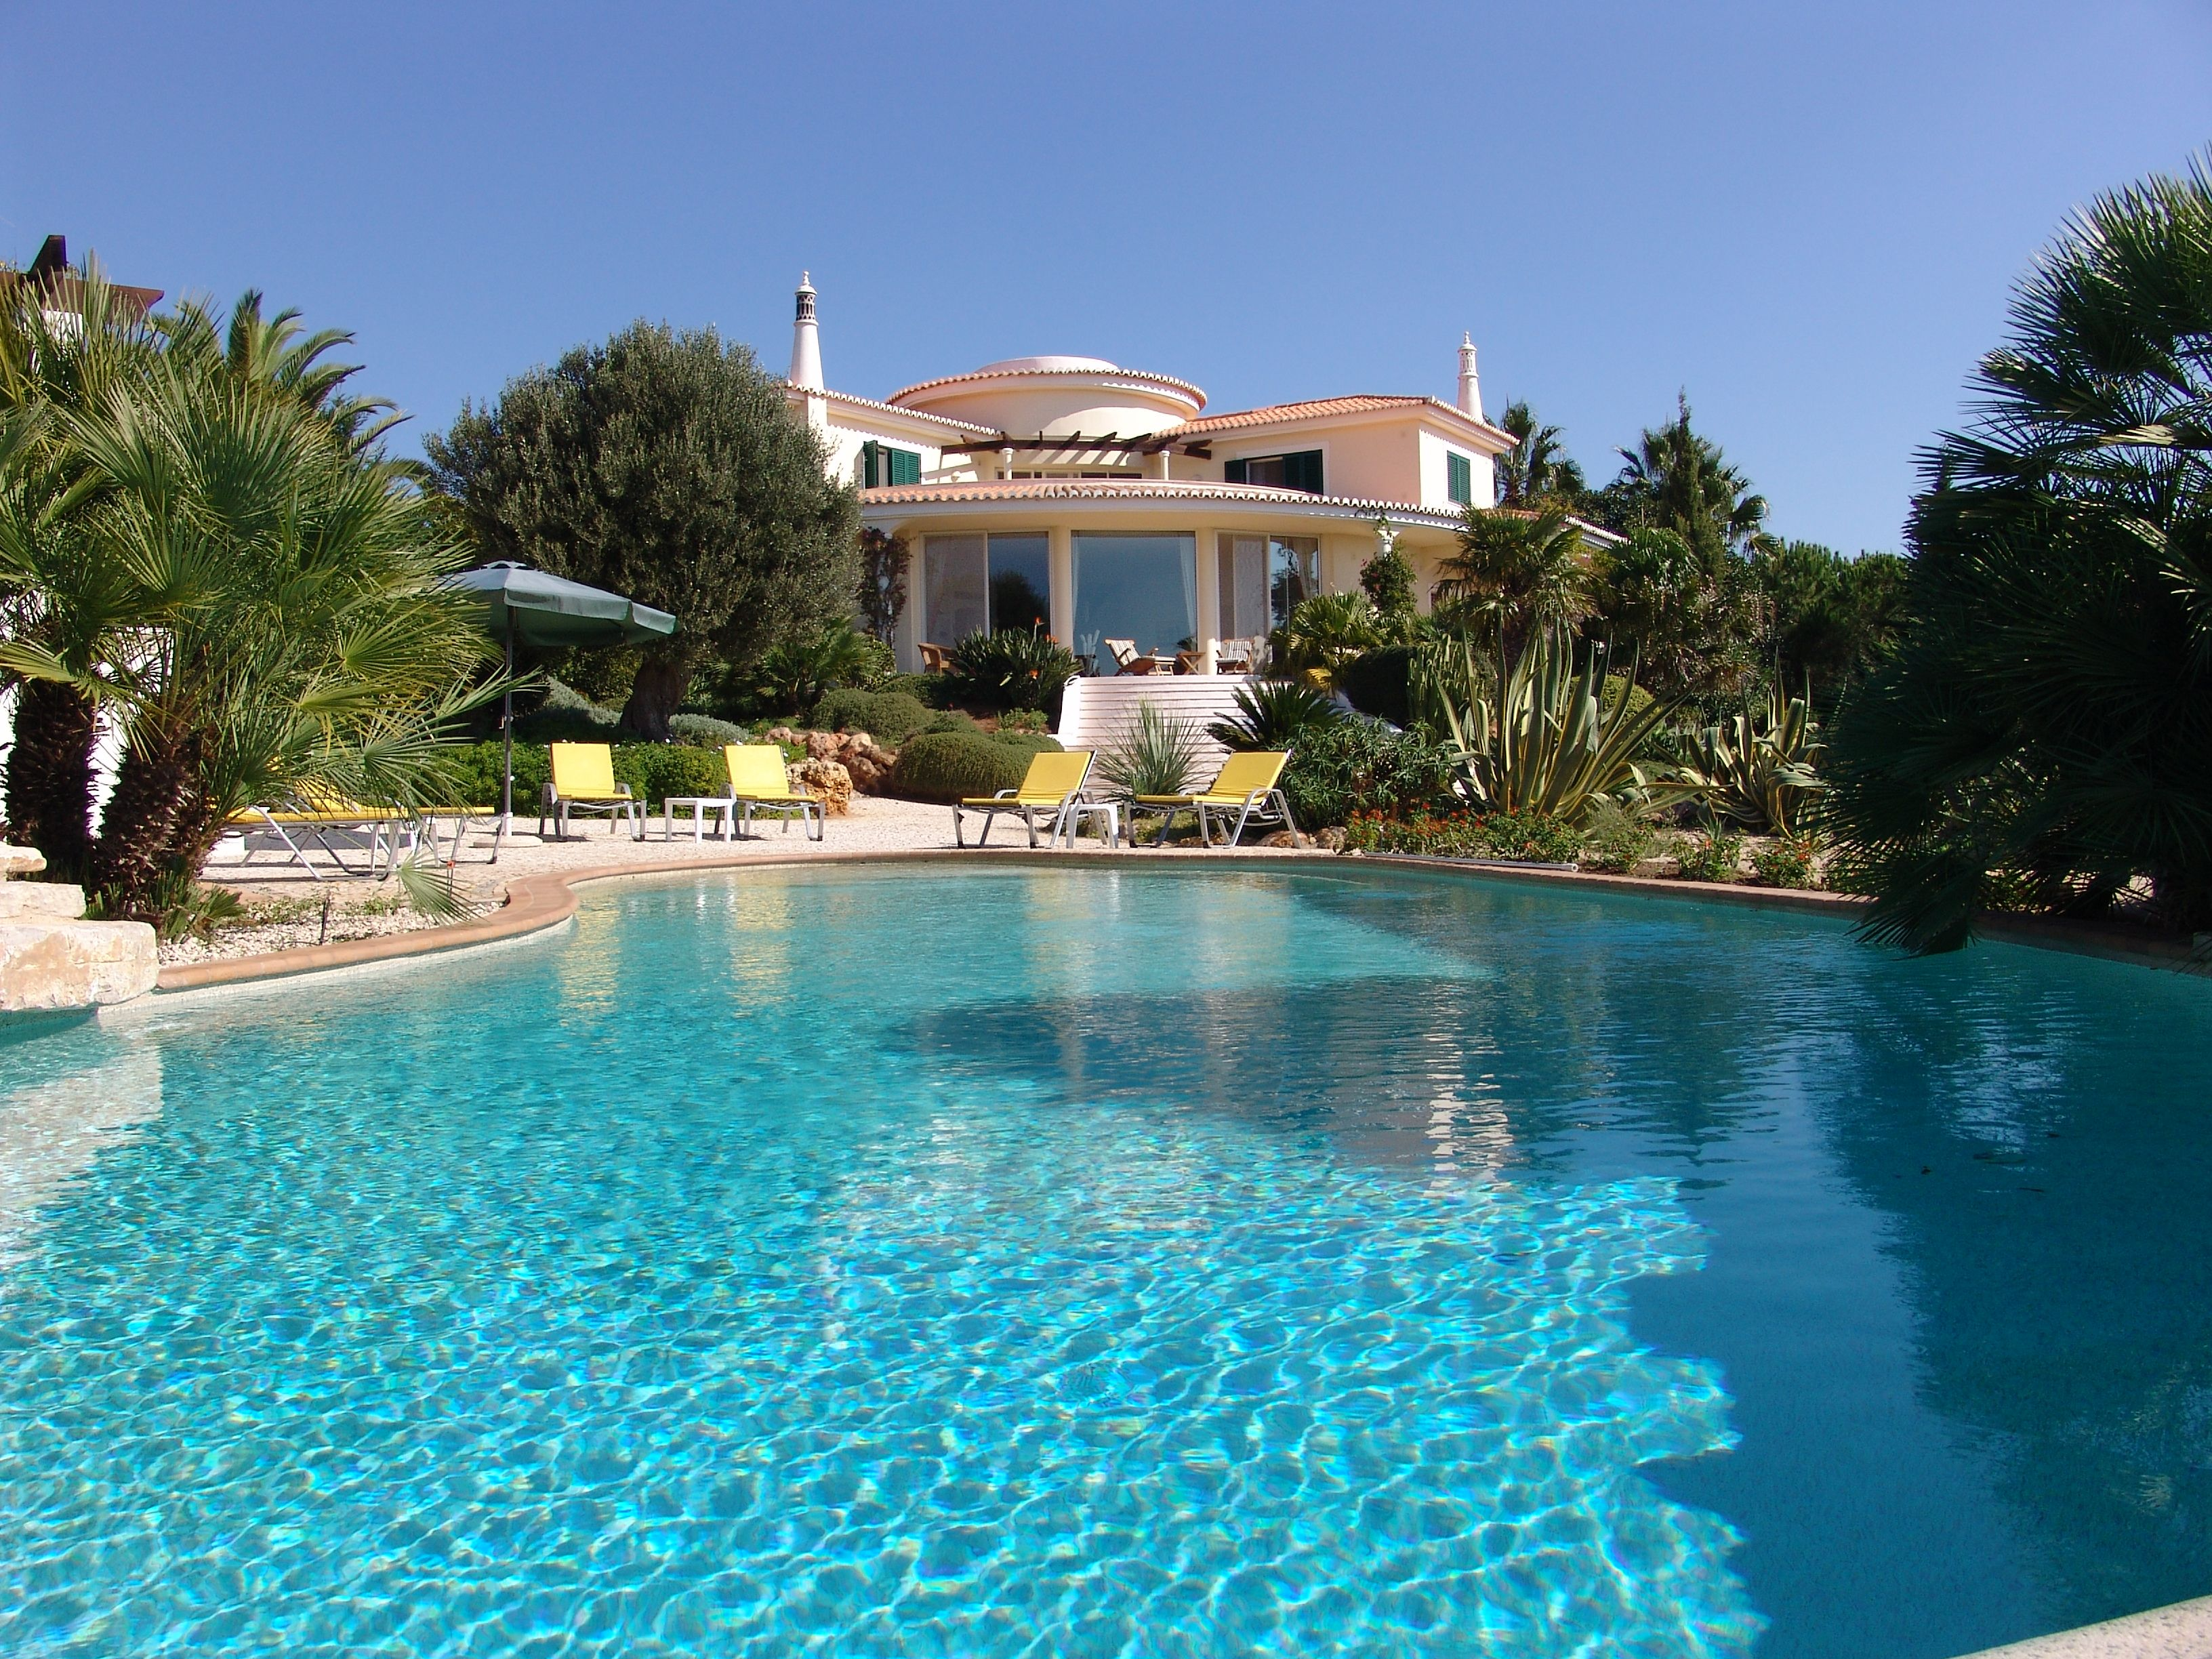 Private Villas In Portugal all of our villas have private pools - we don't offer